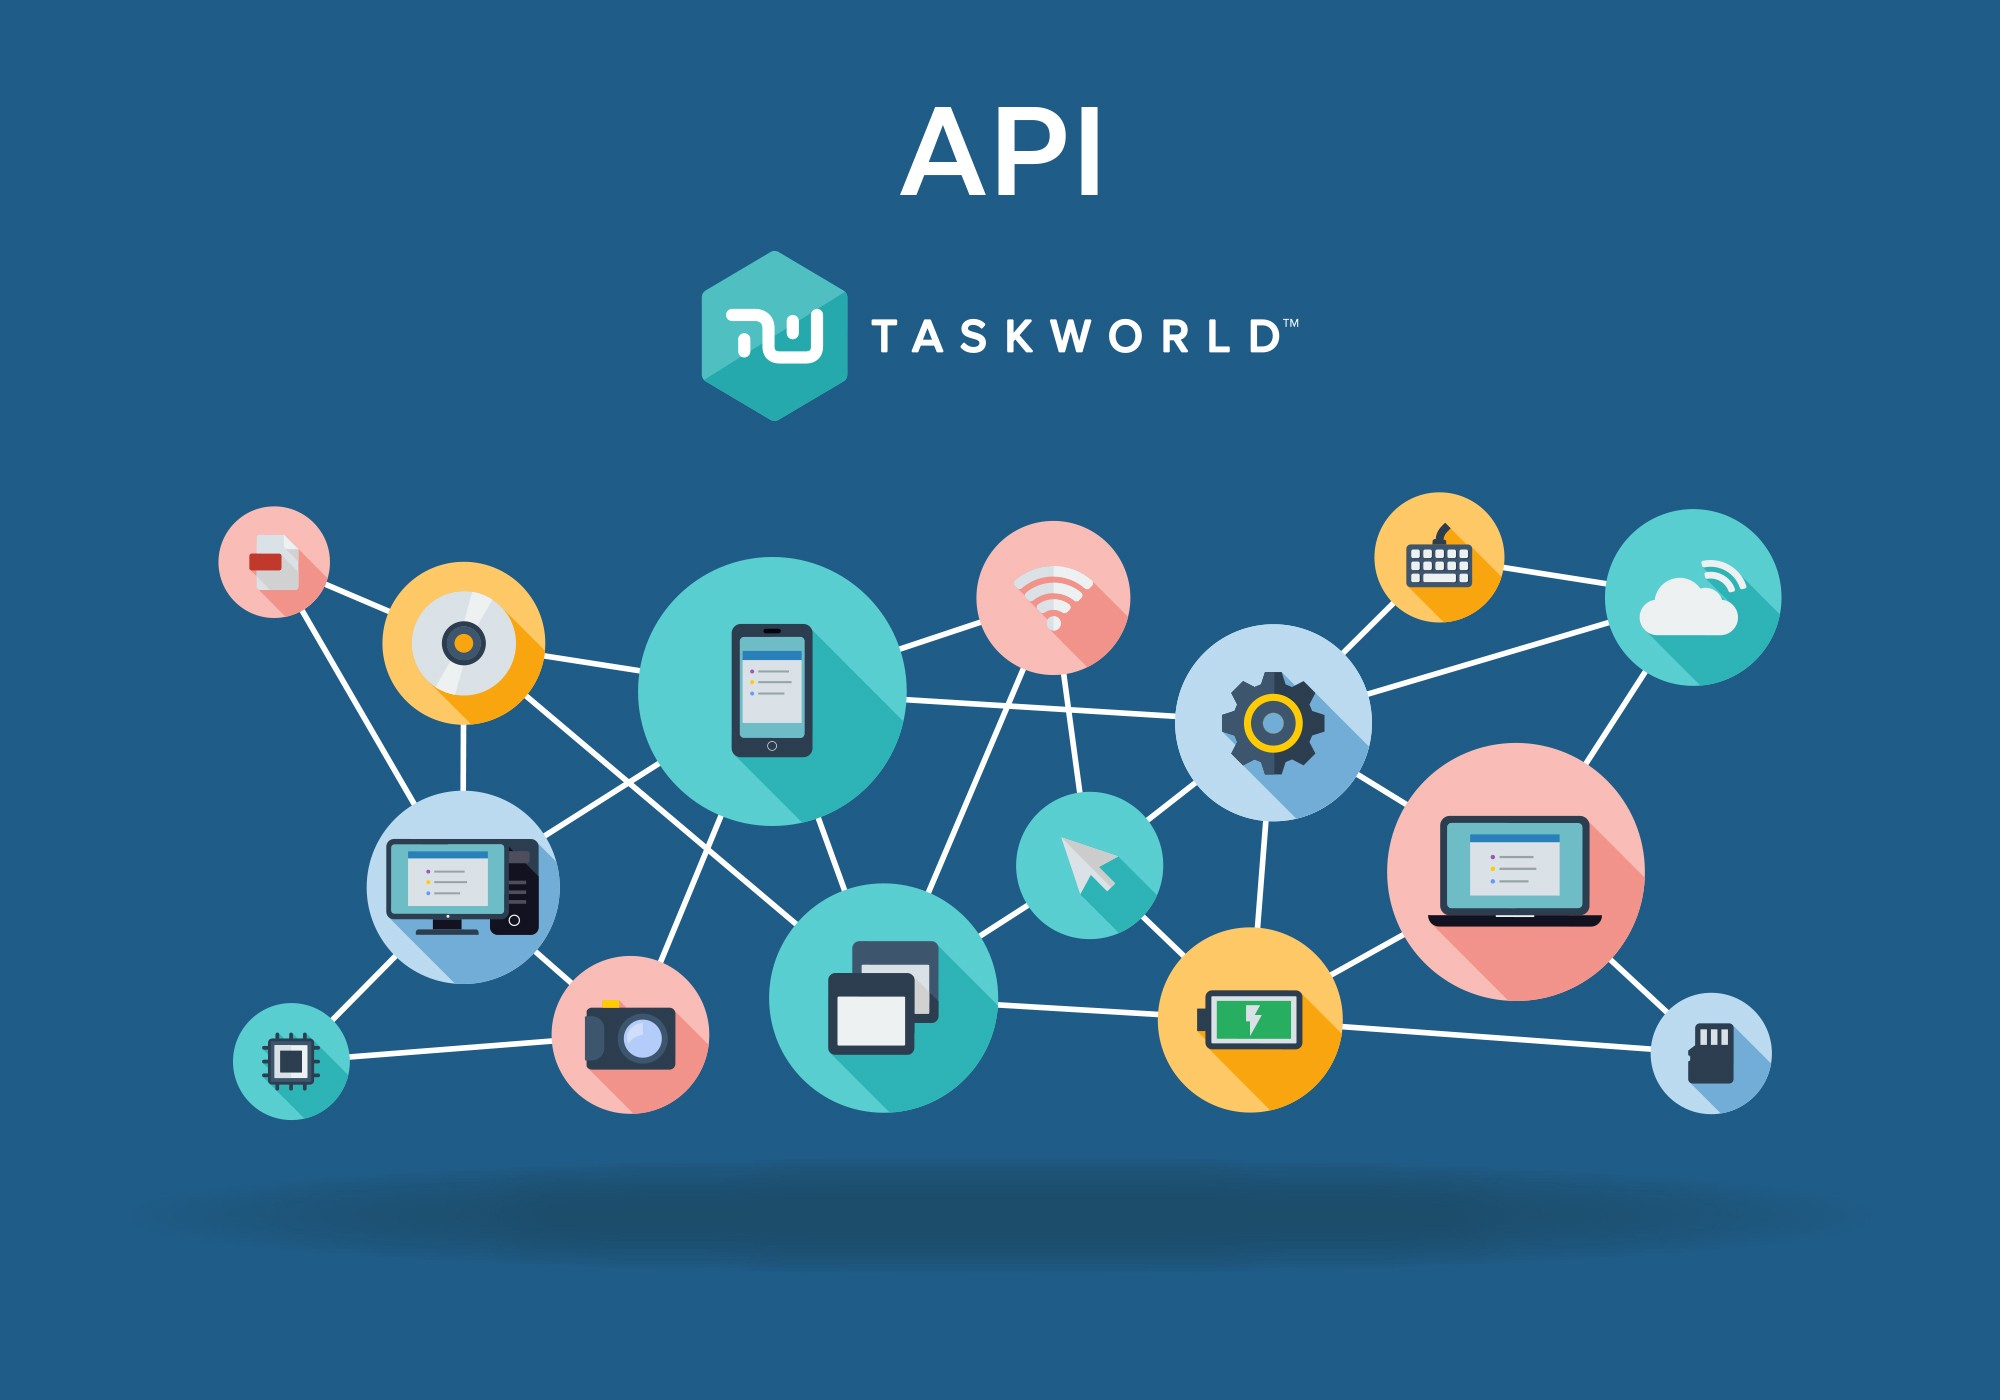 Build on Top of Taskworld With Public API